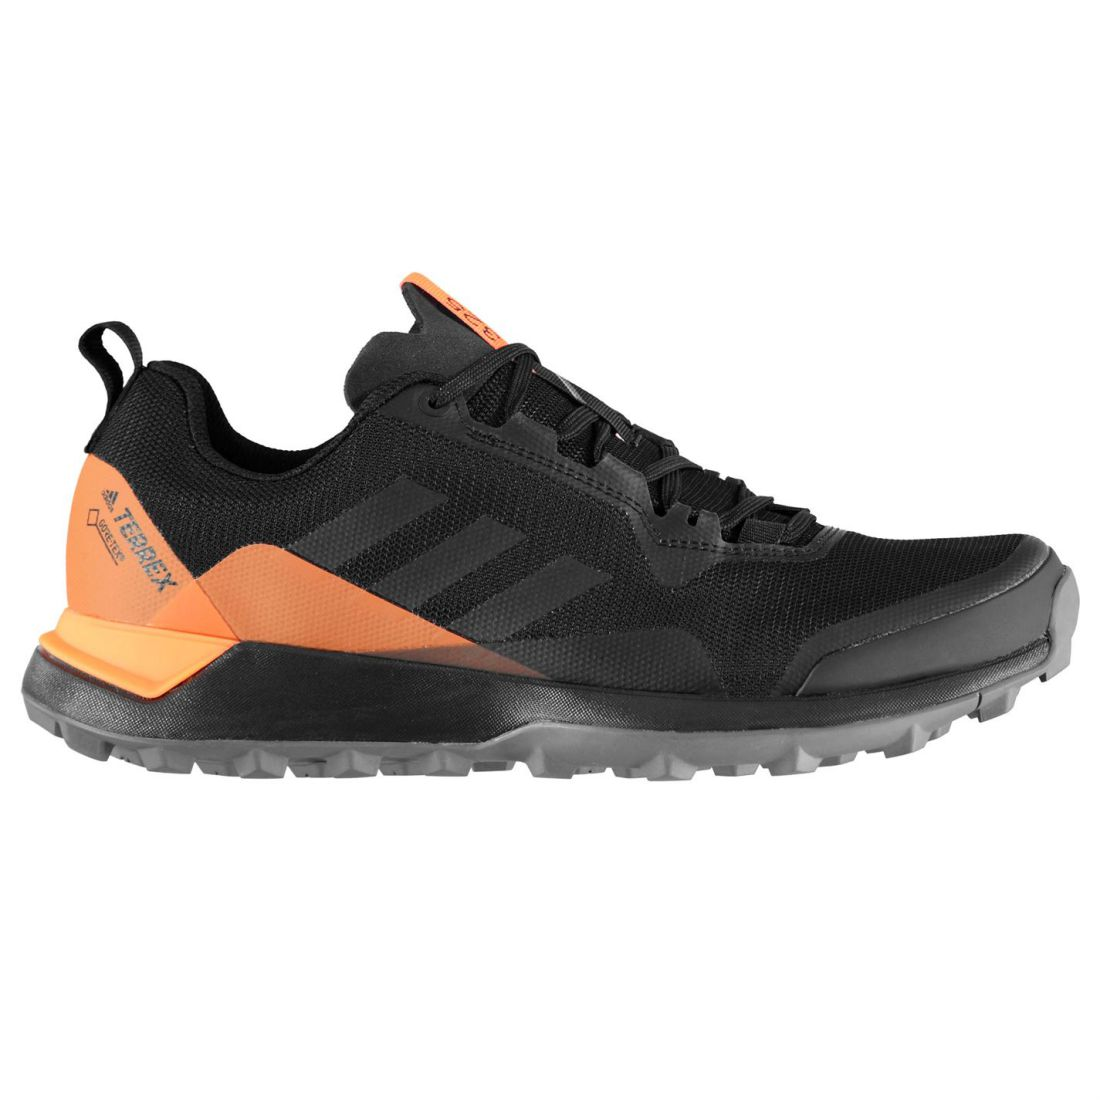 adidas Mens CMTK GTX Trail Running Shoes Lace Up Waterproof Padded Ankle  Collar b389bb9bd